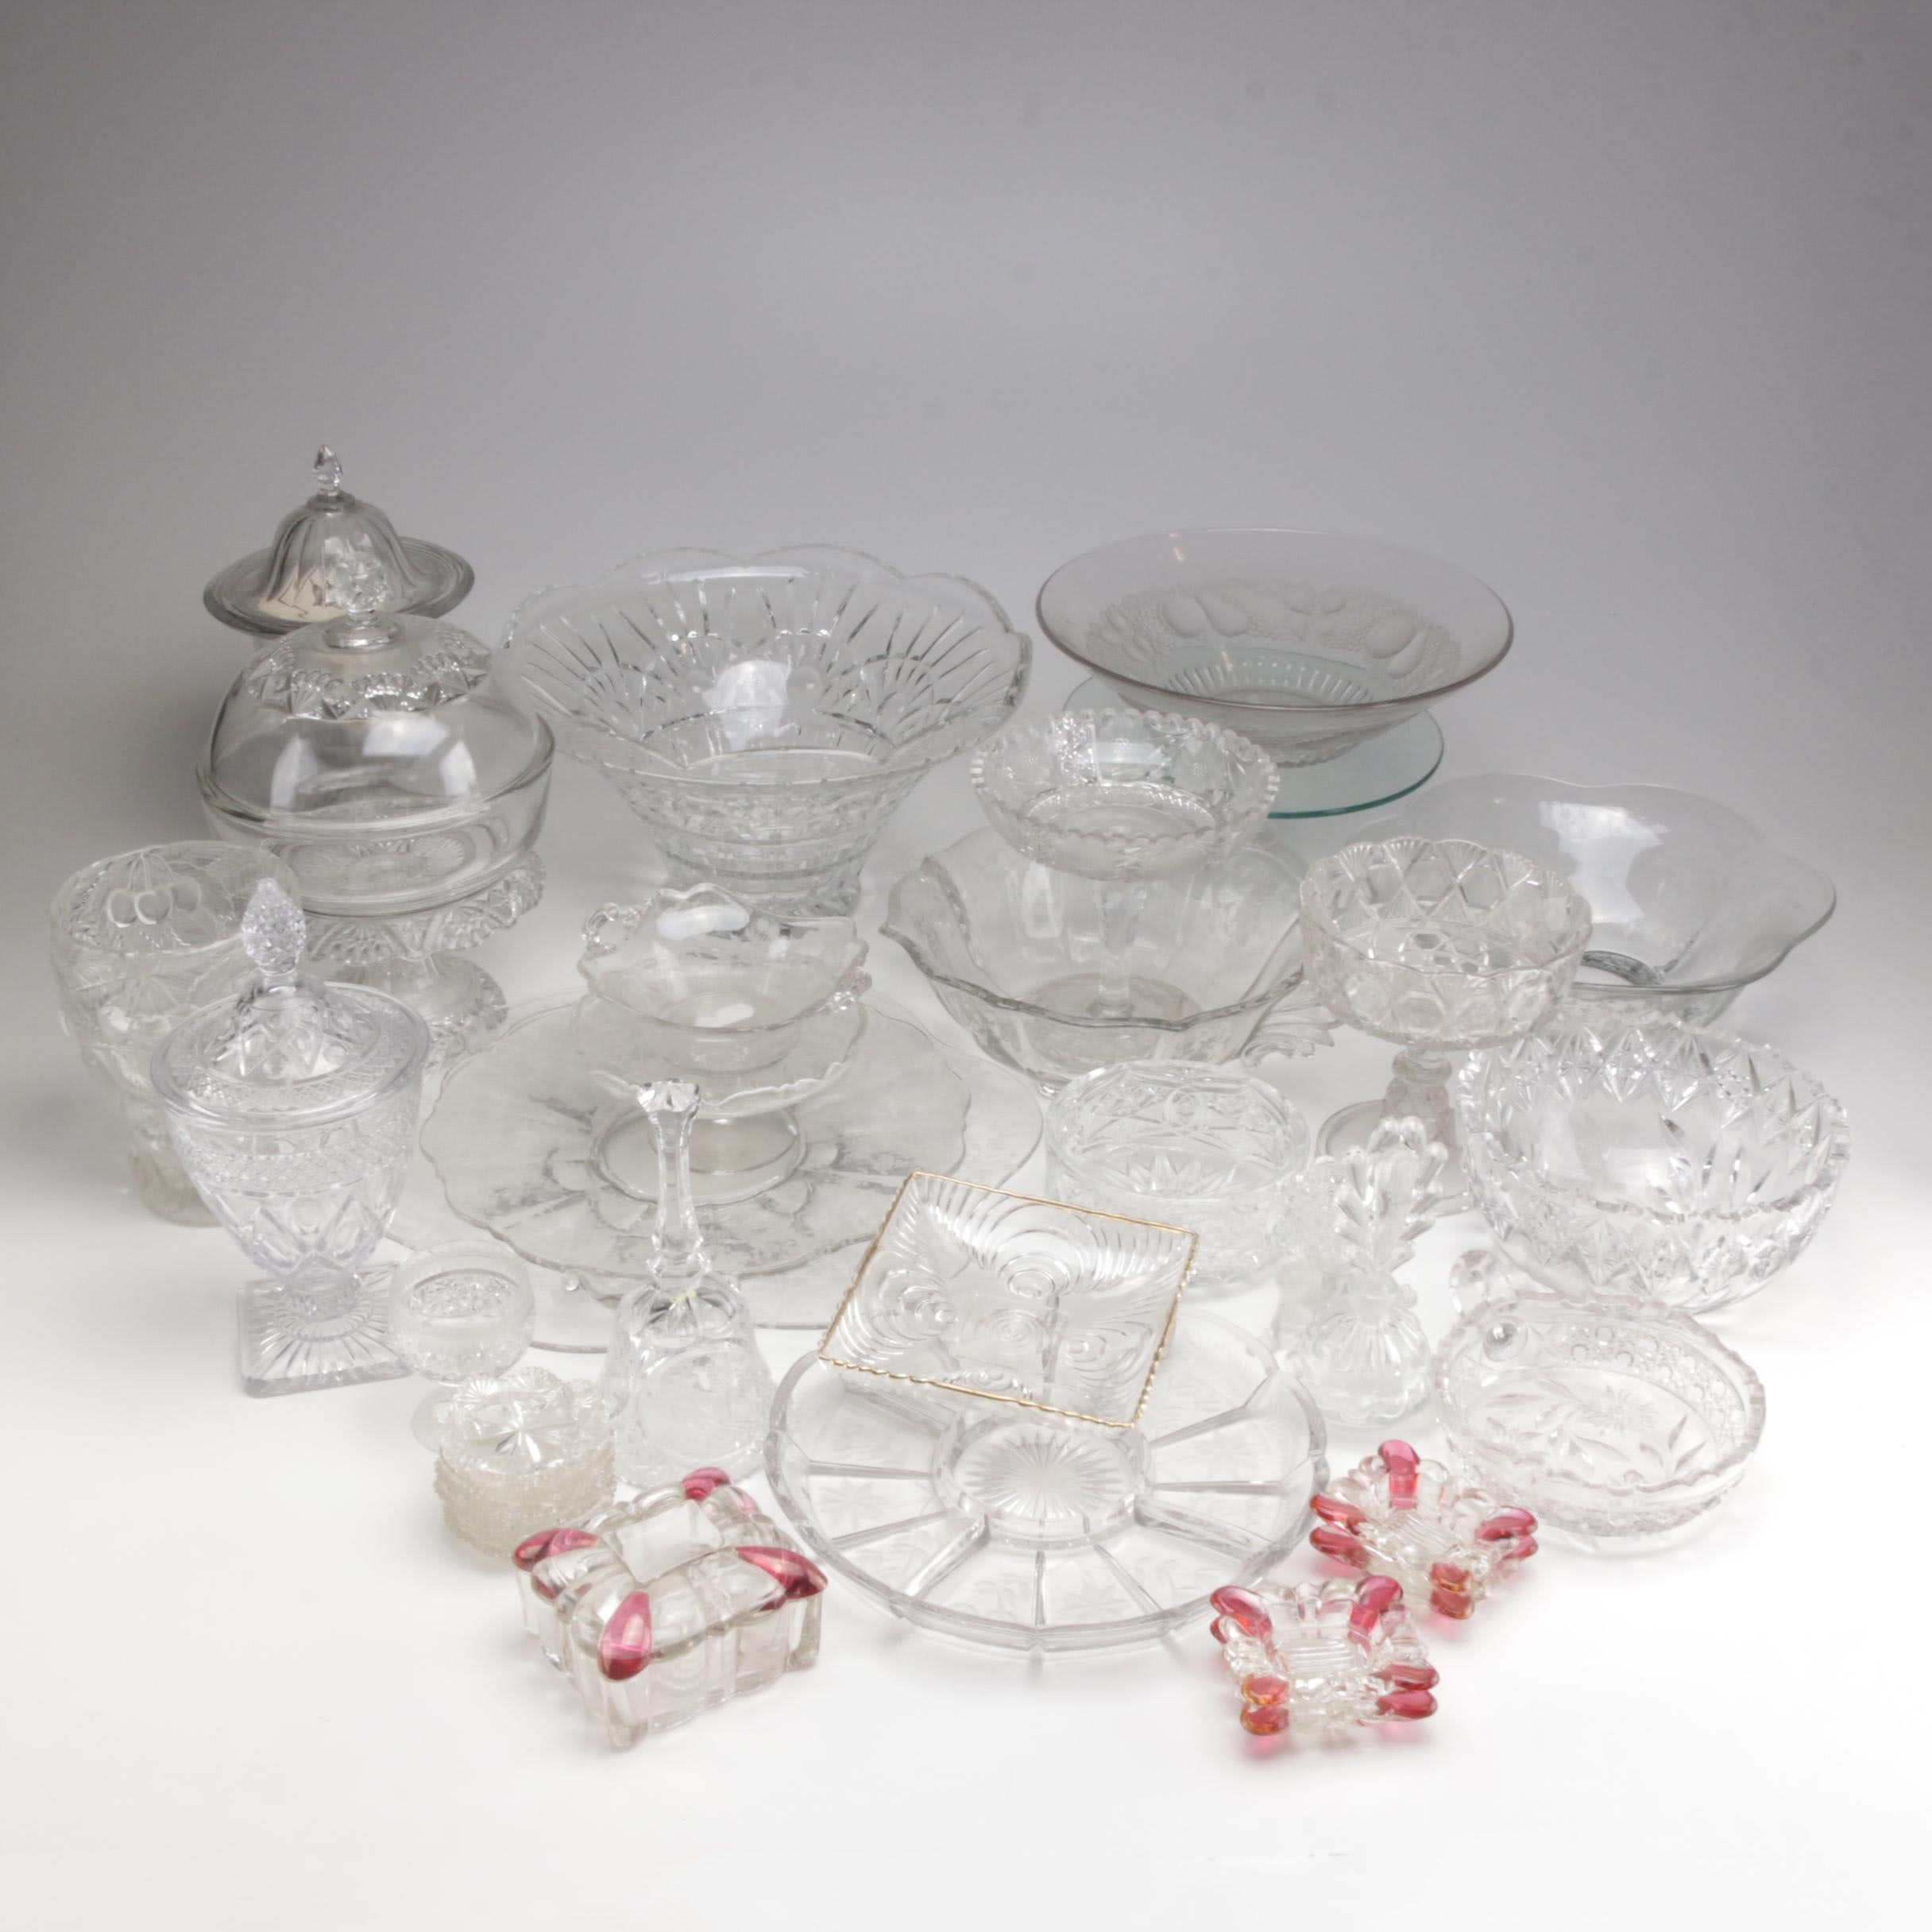 Clear Cut and Pressed Glass Serveware Collection